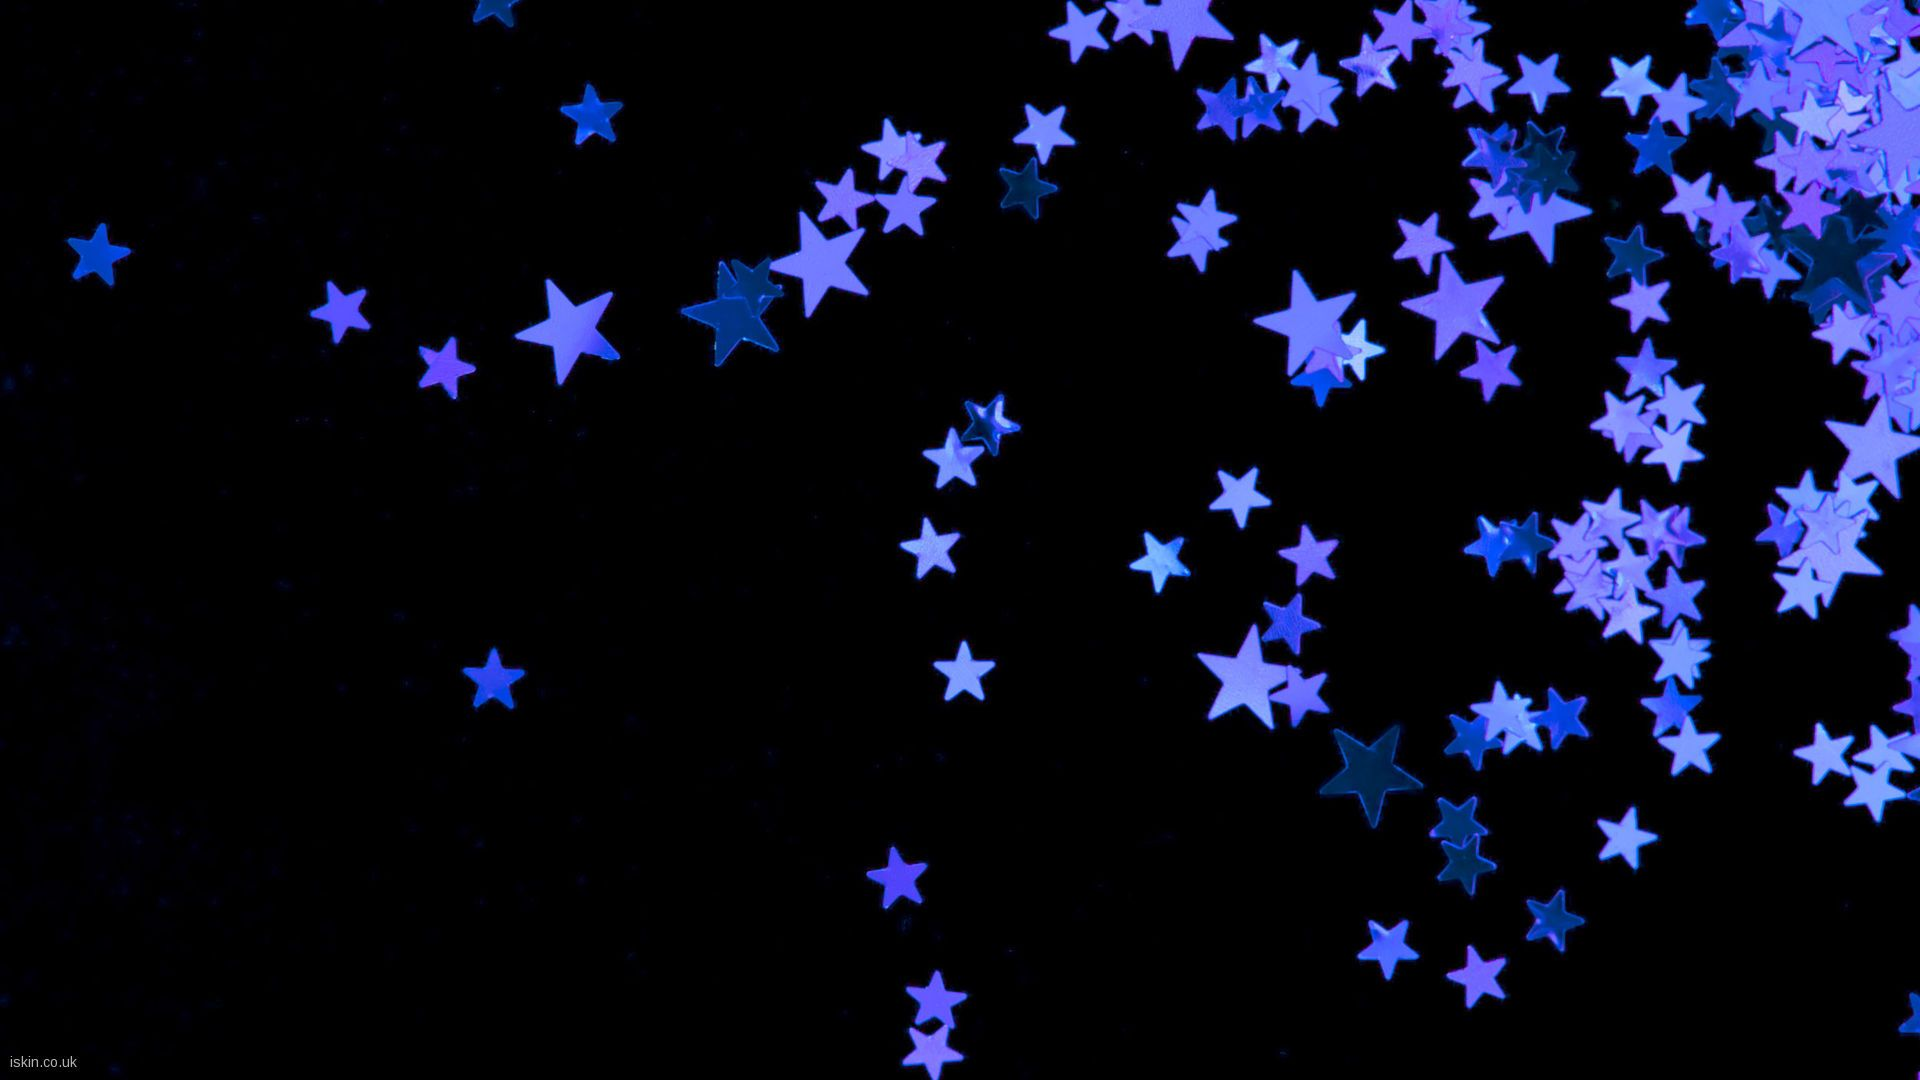 Black And Blue Star Background Images 6 HD Wallpapers ...